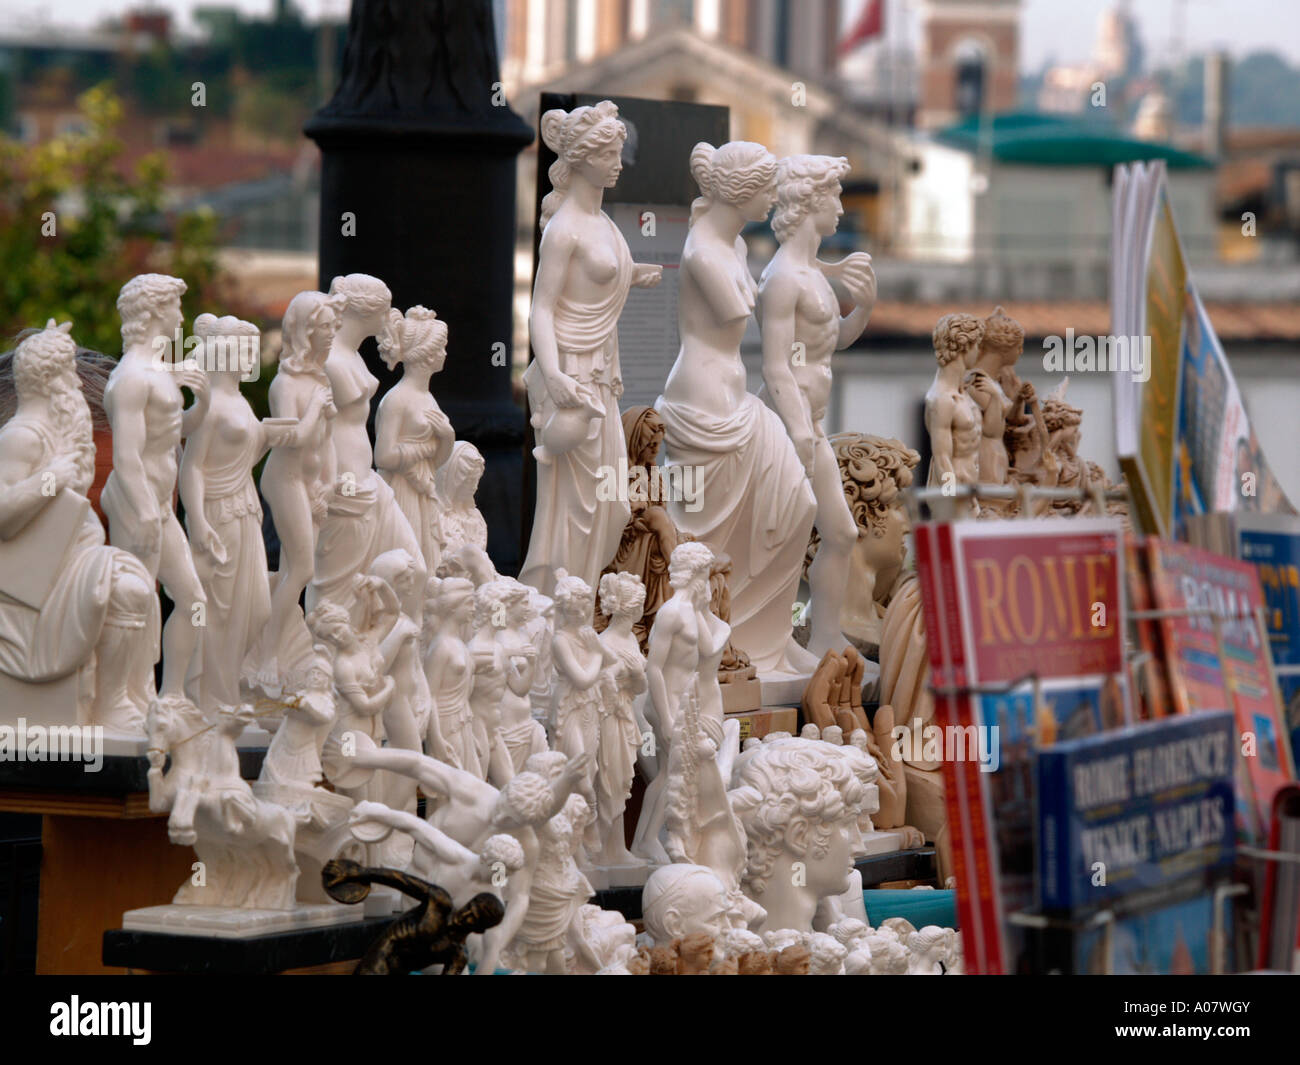 Greek Roman Statues On Sale From Stall In Rome Stock Photo